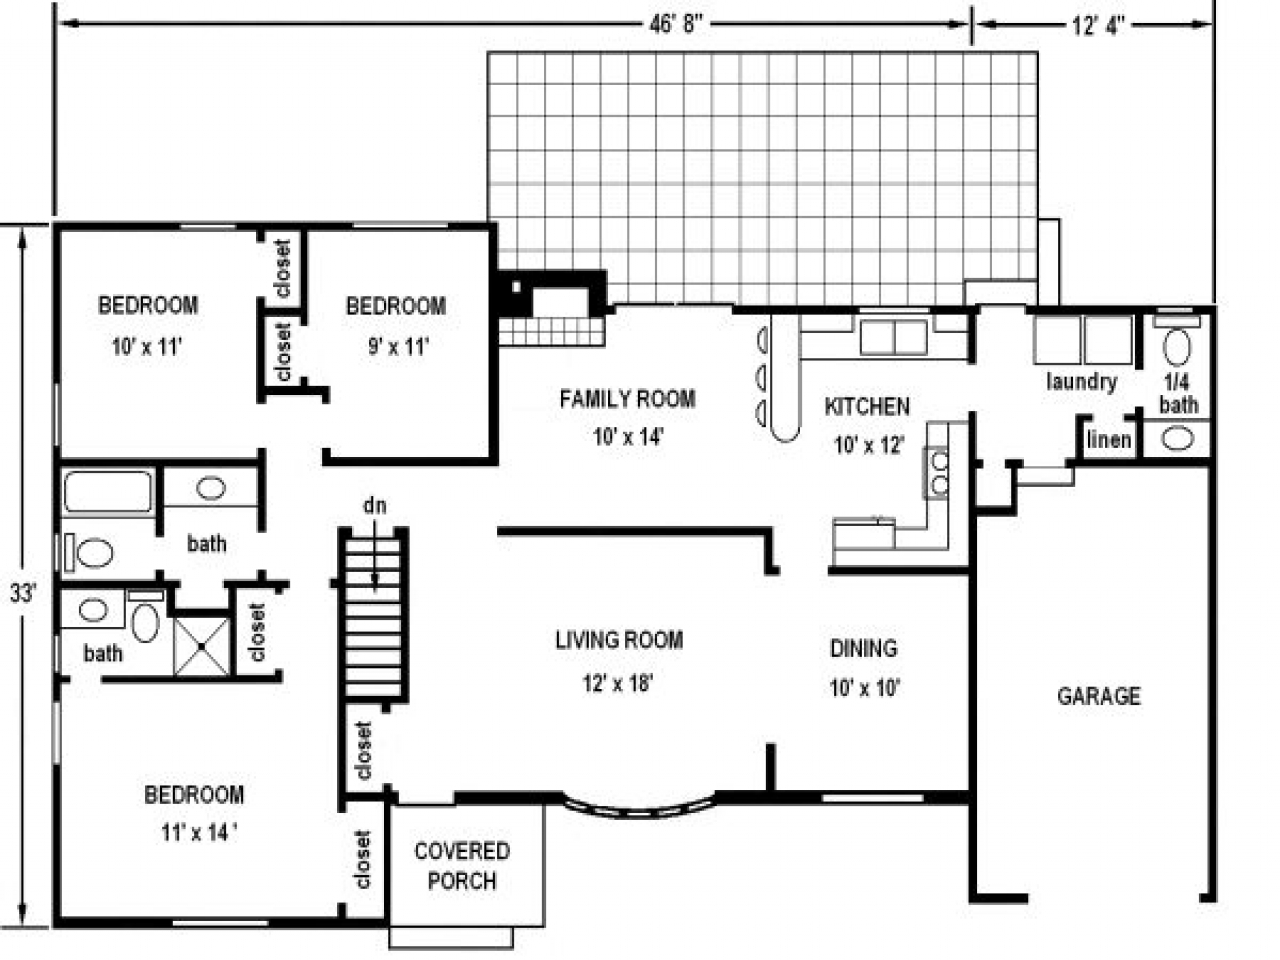 Design own house free plans free printable house blueprints plans freehouse plans Design your own house floor plans